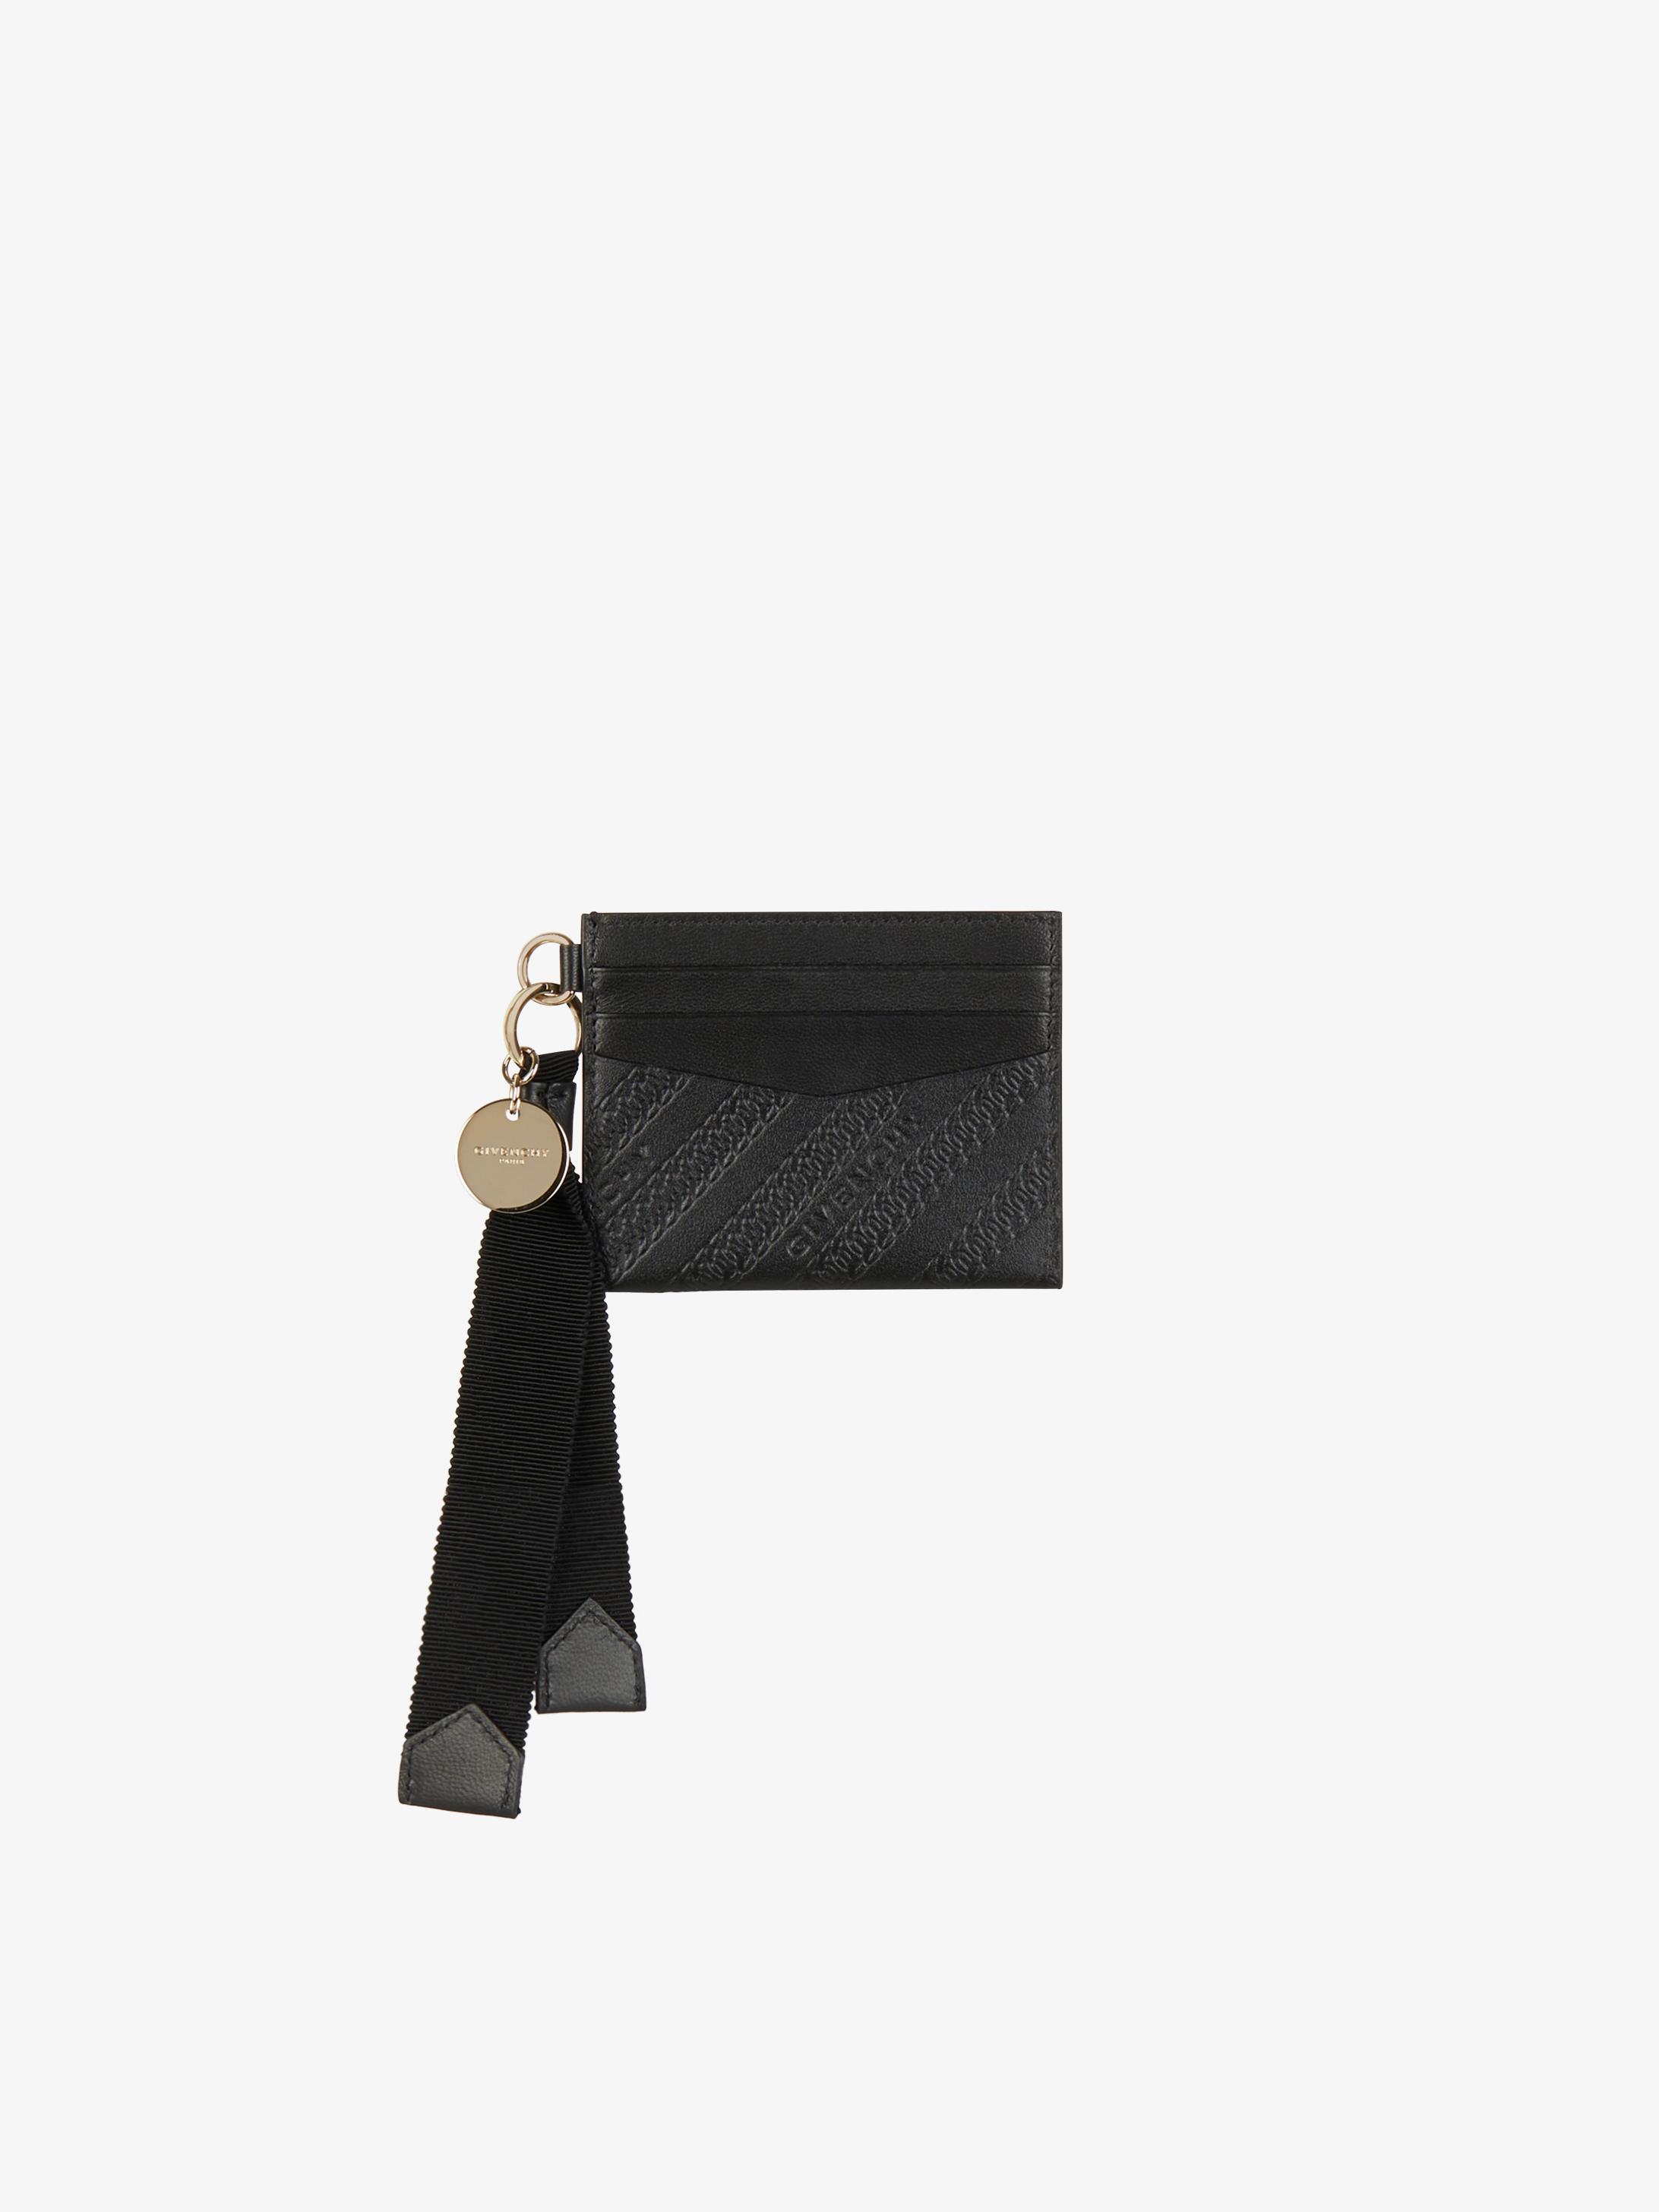 Bond card holder in GIVENCHY chain leather